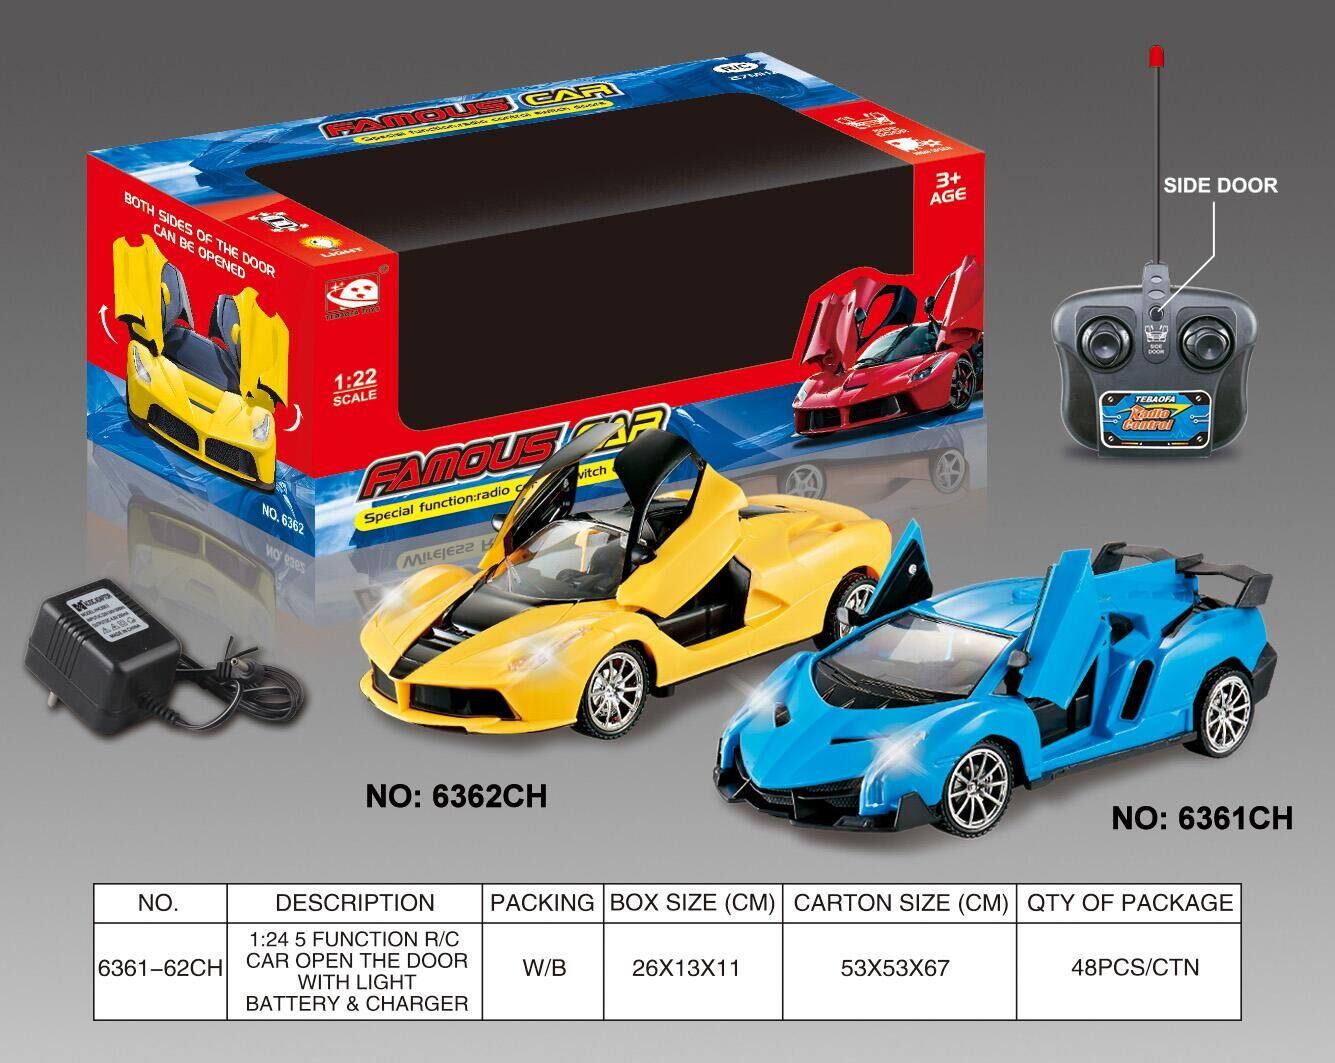 1:24 5 FUNCTION R/C CAR OPEN THE DOOR WITH LIGHT INCLUDED BATTERY AND CHARGER No.:6361-62CH